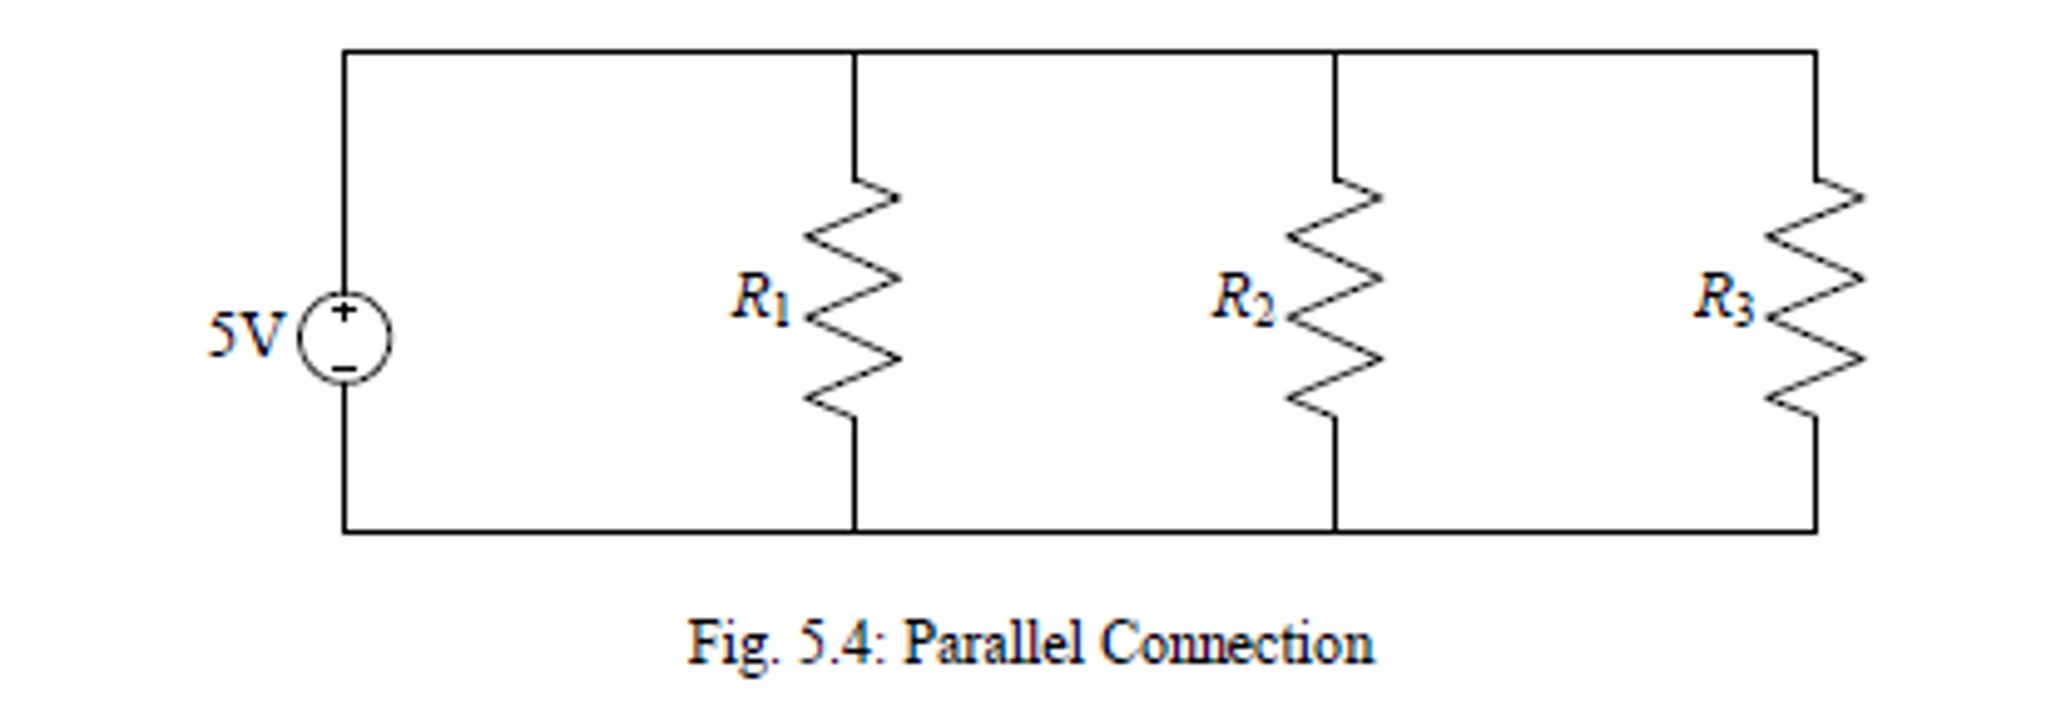 Solved On Ni Elvis Prototyping Board Makes Connections As Series Parallel Circuit Examples How To Use A Multimeter 54 Connection 35 E Repeat Part C For The Given In Fig 55